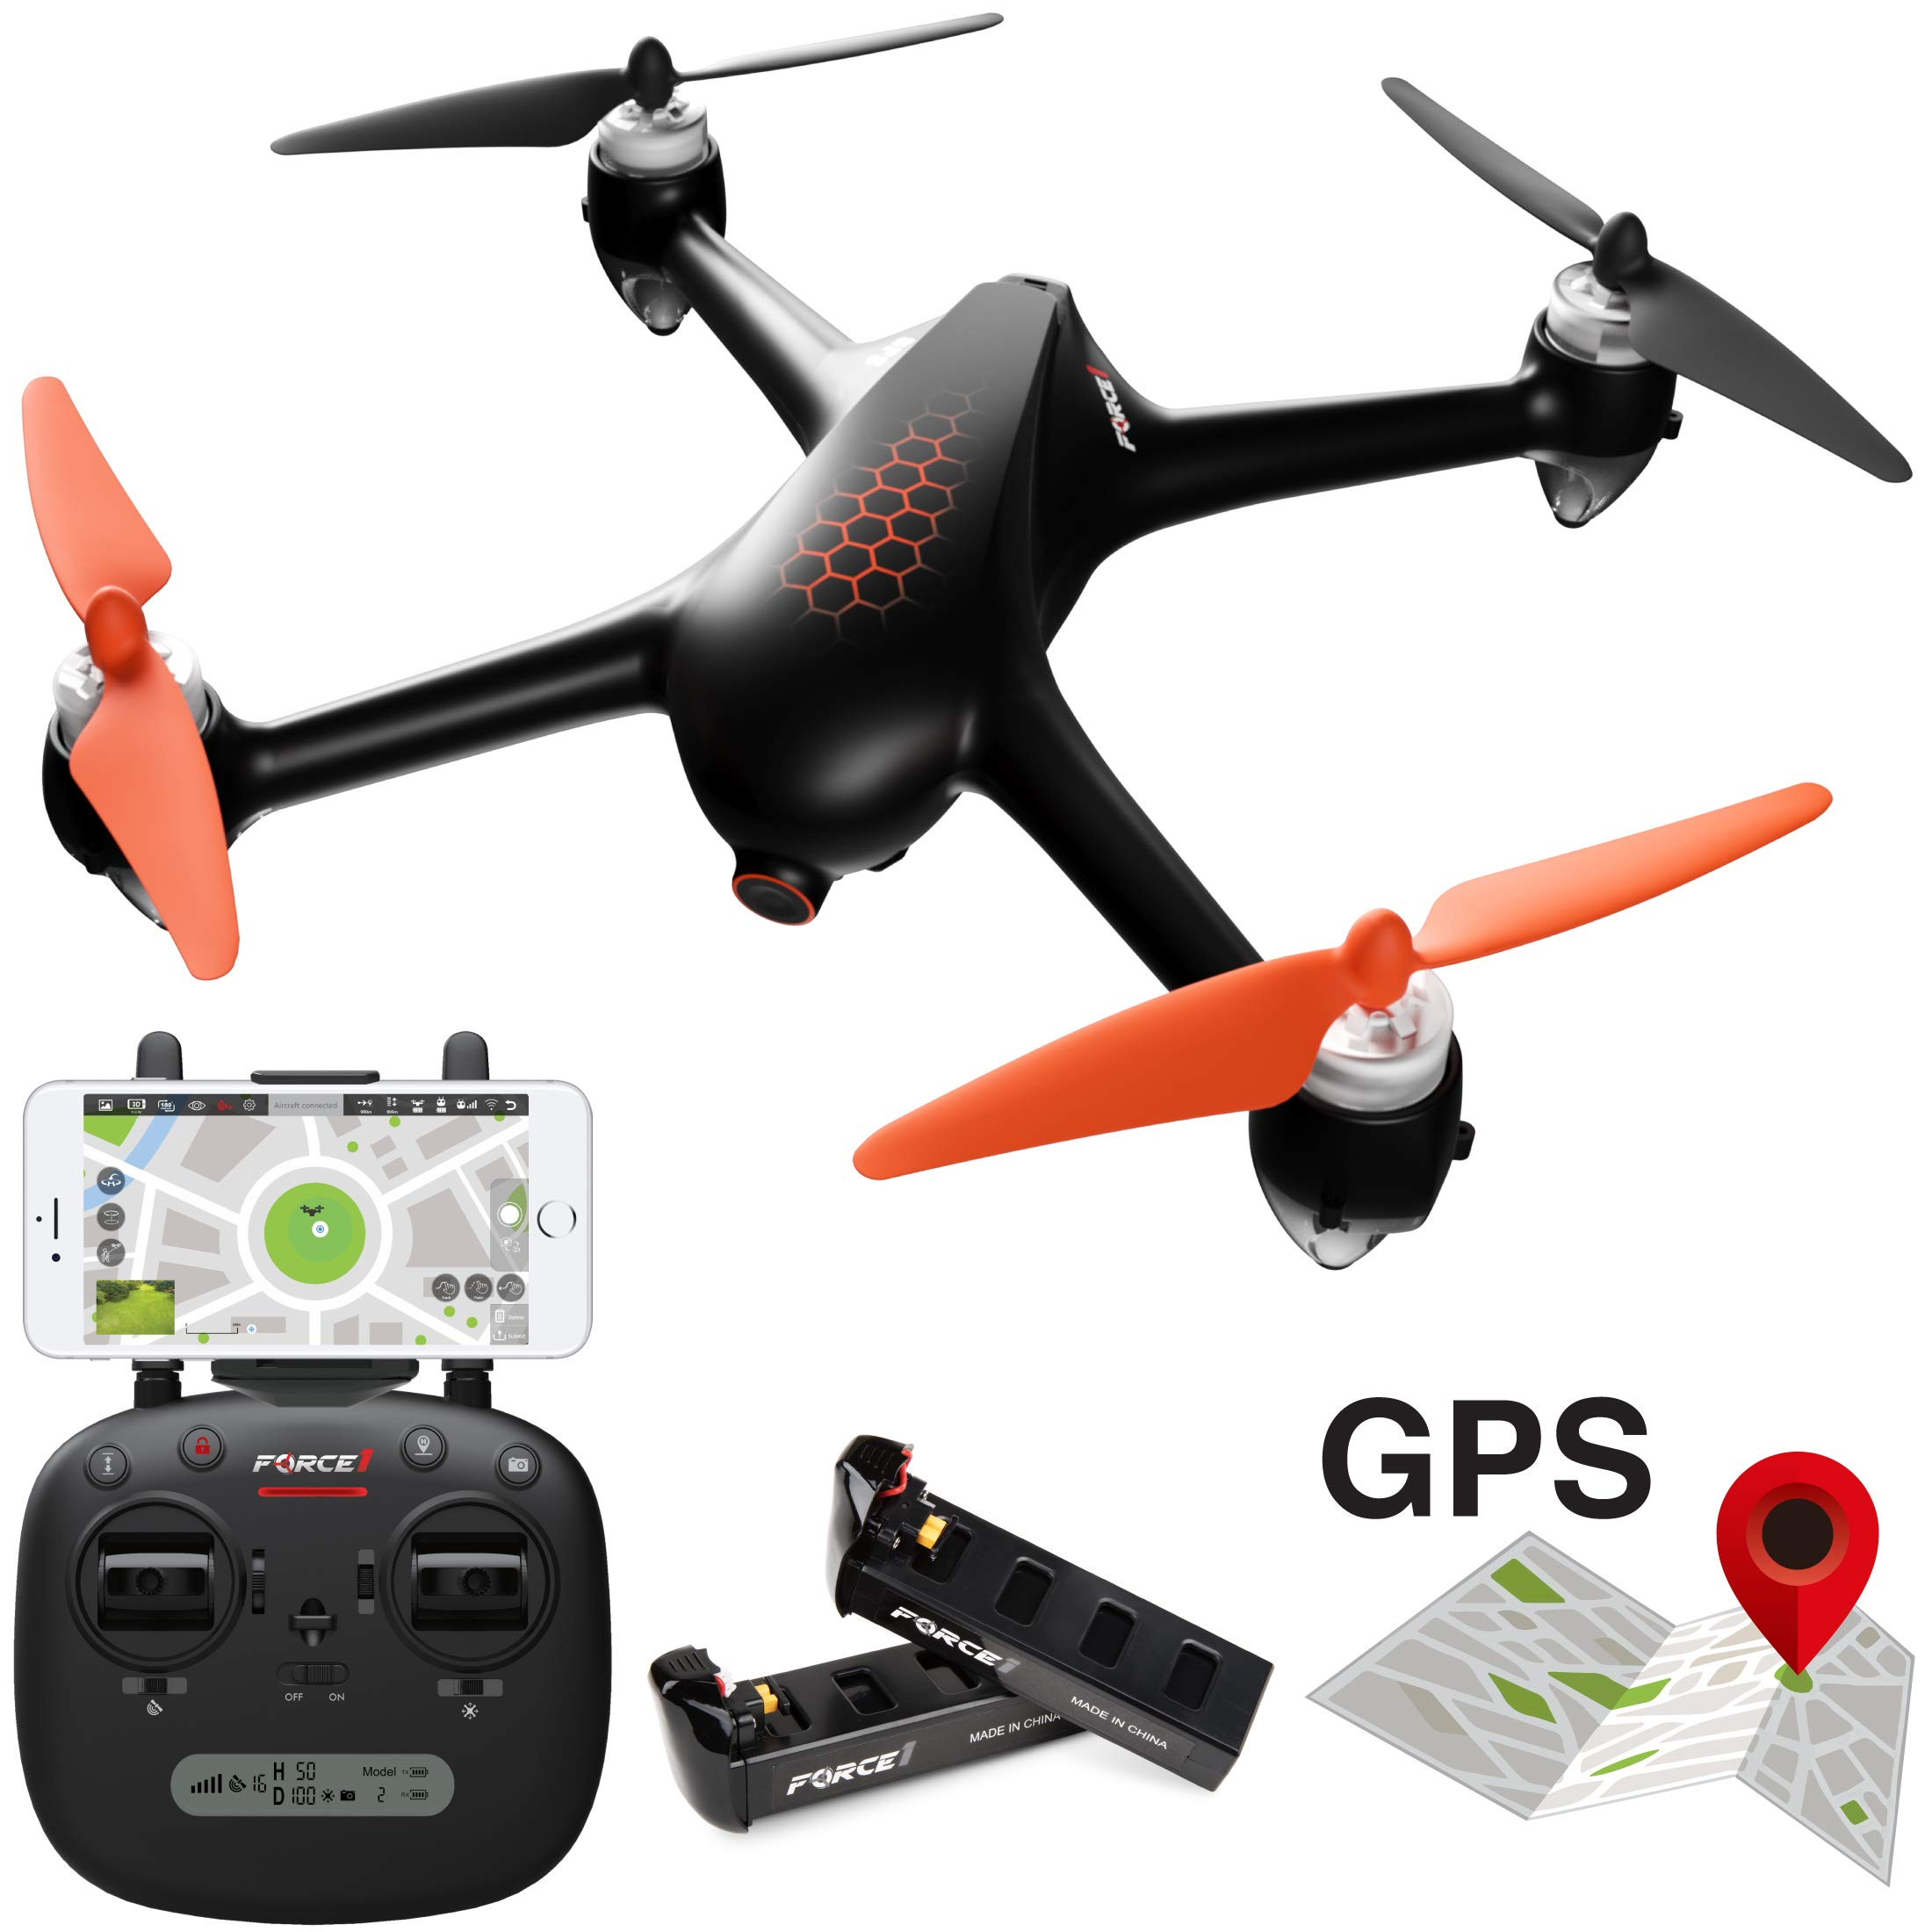 Force1 GPS Drones with Camera – F200SE Shadow Hex GPS Follow Me Drone, 1080p HD WiFi Camera Drone, FPV Drone, Long Range Drone w/VR Capability